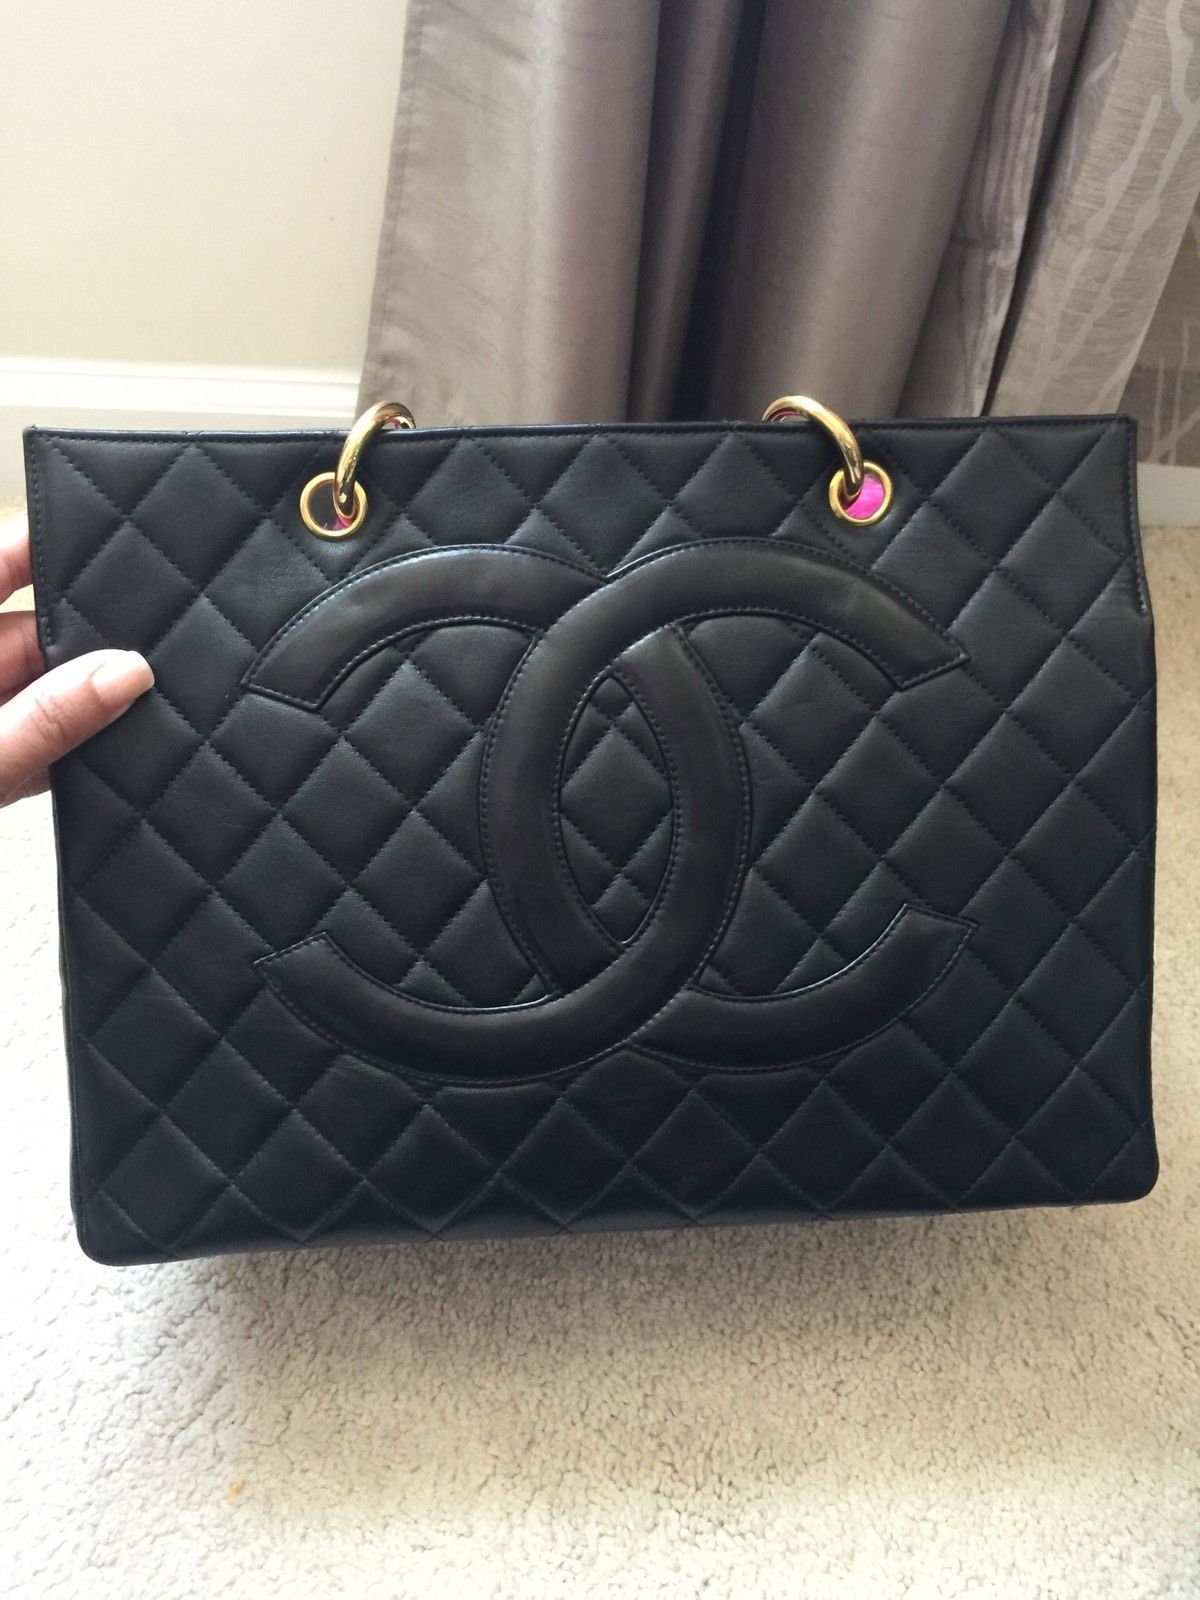 a89161a8434a Authentic Vintage Chanel Black Lambskin Grand Shopper Tote GST With GHW  Chanel Handbags